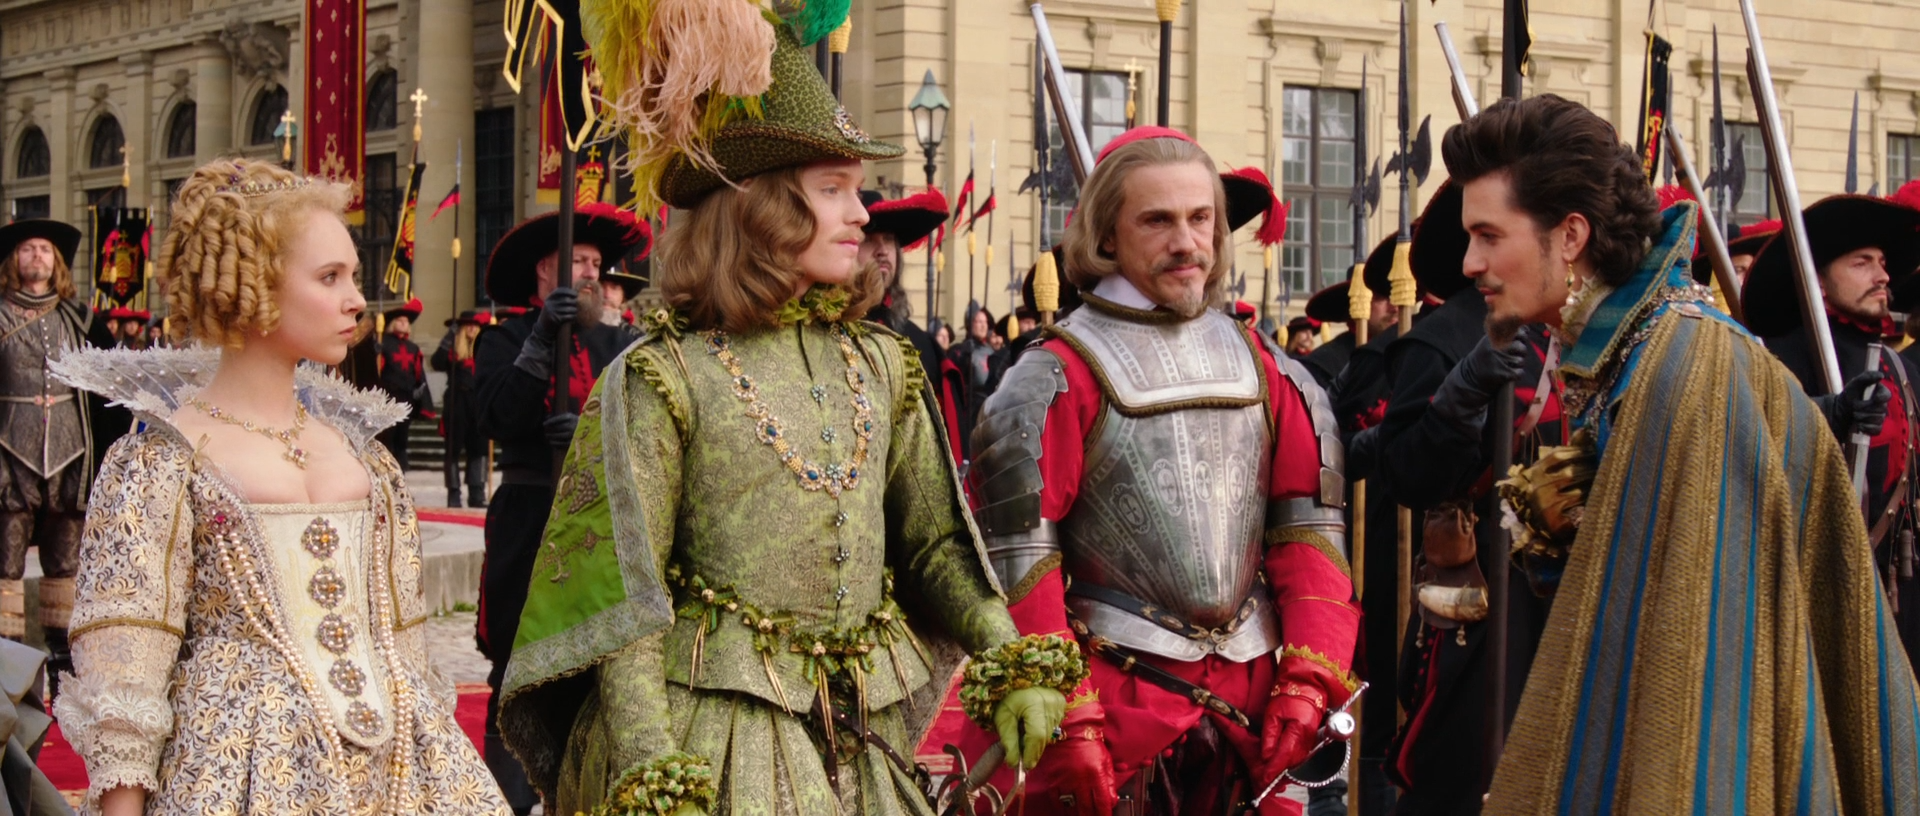 The Three Musketeers (4).png